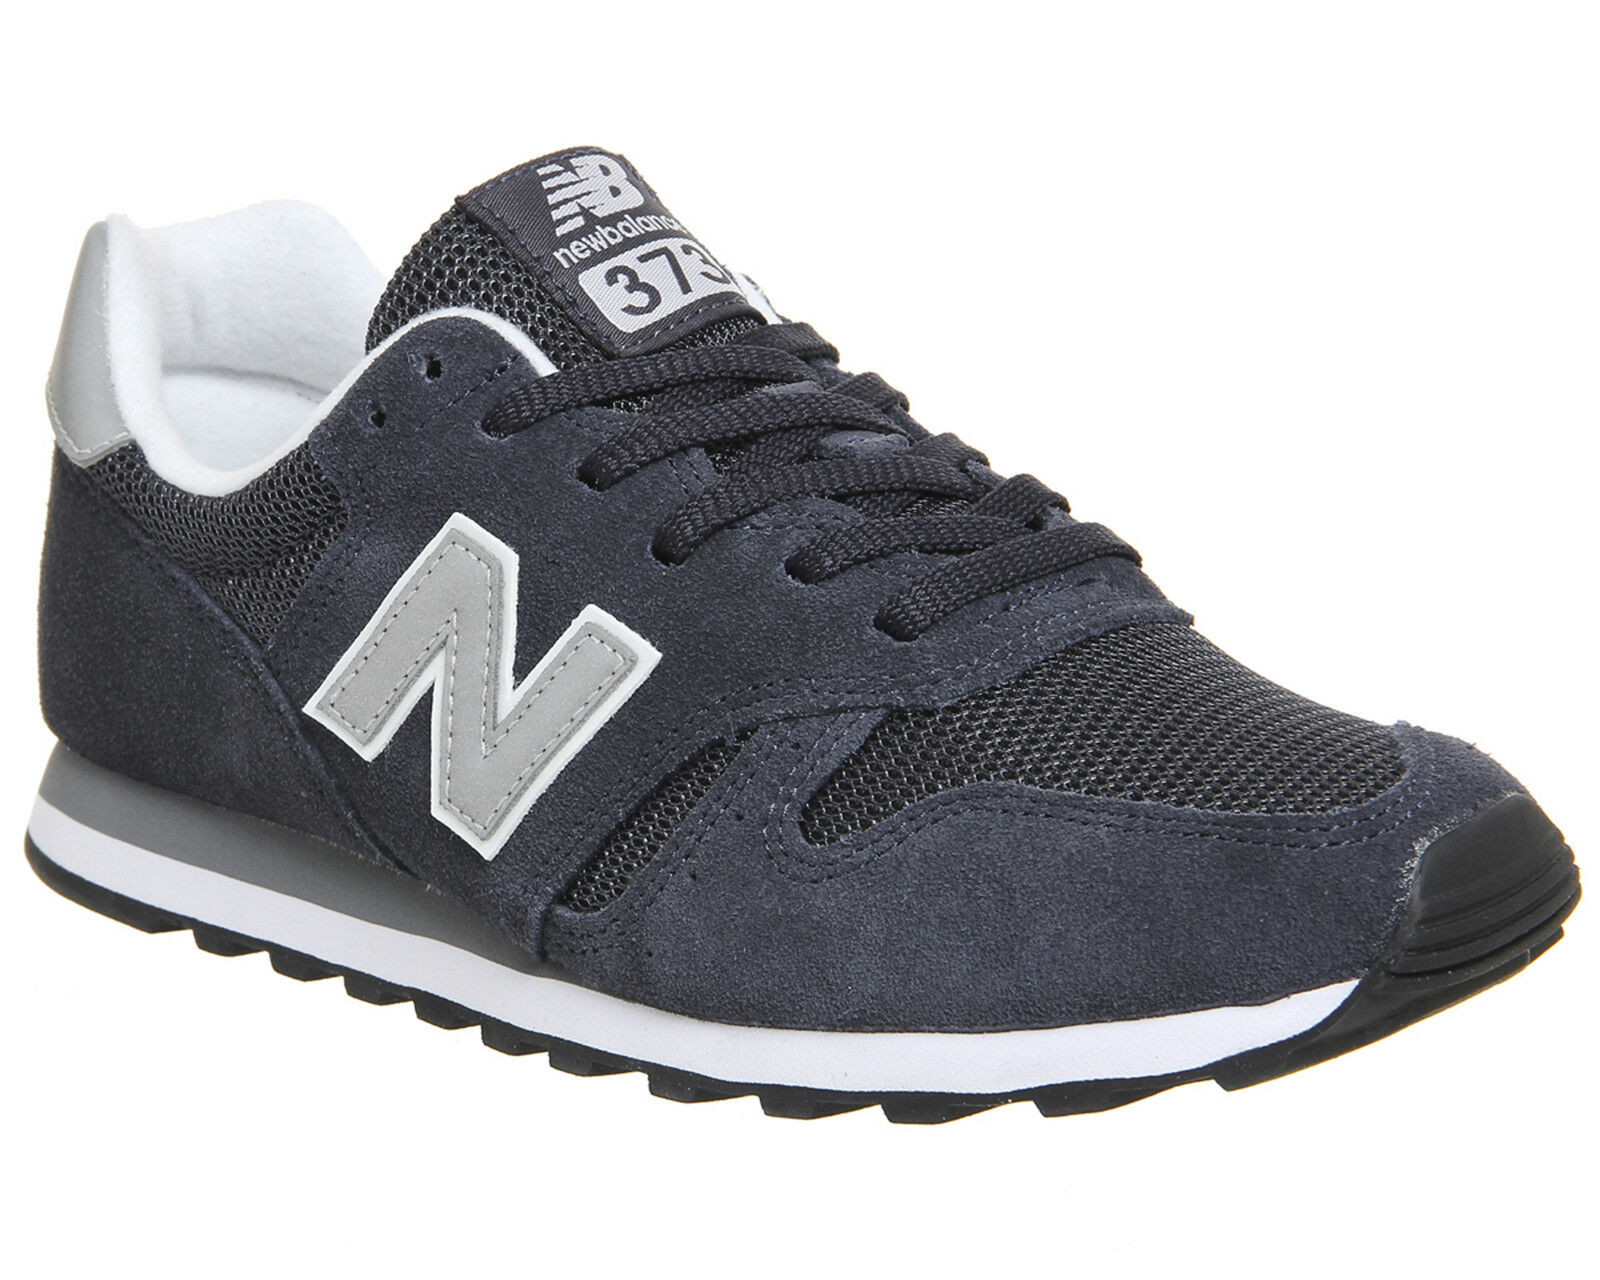 Homme New Balance 373 Navy Argent Baskets Chaussures